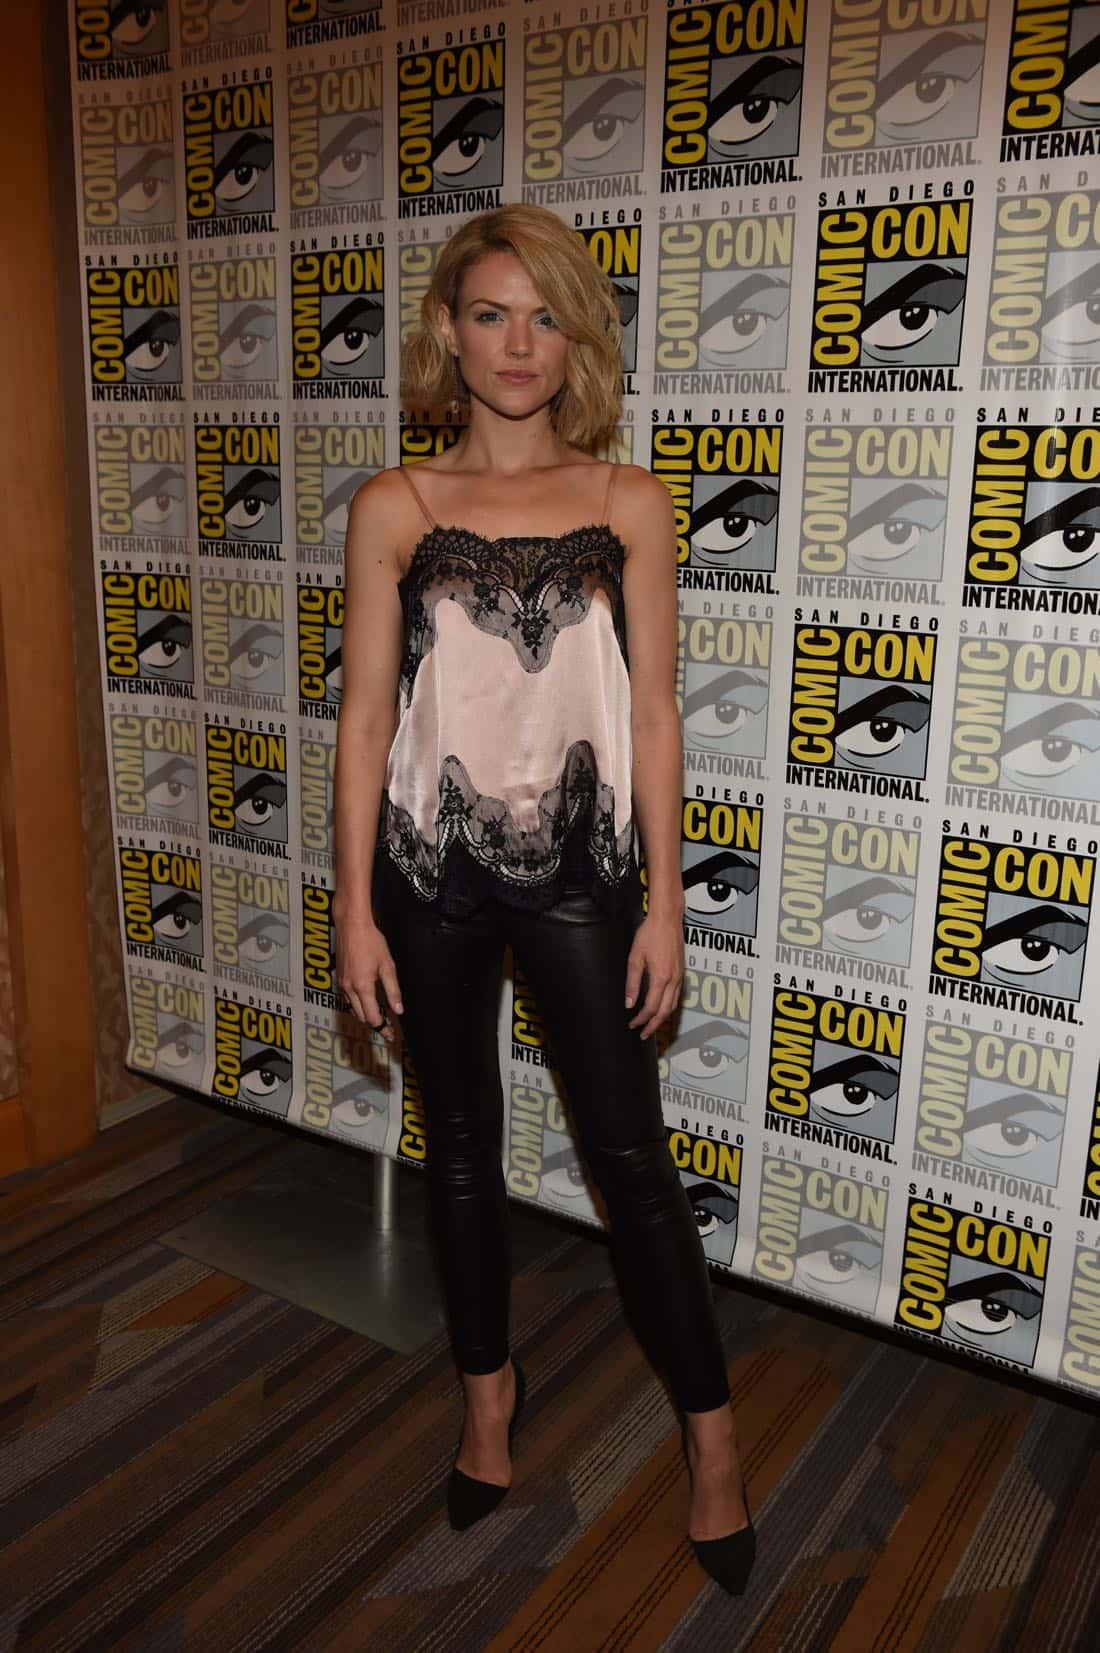 FOX FANFARE AT SAN DIEGO COMIC-CON © 2016: GOTHAM cast member Erin Richards during GOTHAM press room on Saturday, July 23 at the FOX FANFARE AT SAN DIEGO COMIC-CON © 2016. CR: Scott Kirkland/FOX © 2016 FOX BROADCASTING